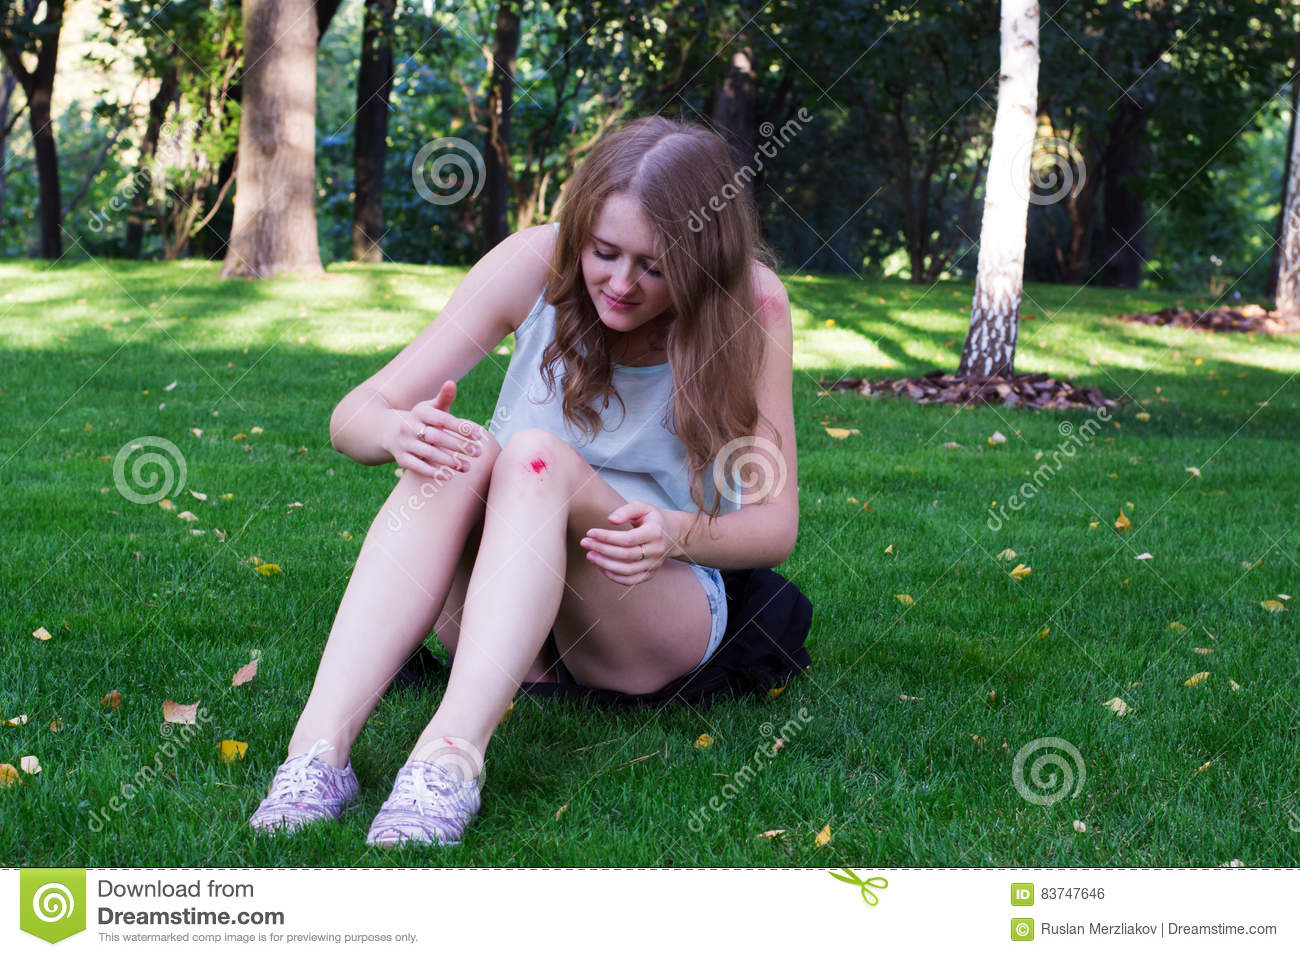 Girl with a bruise on her knee